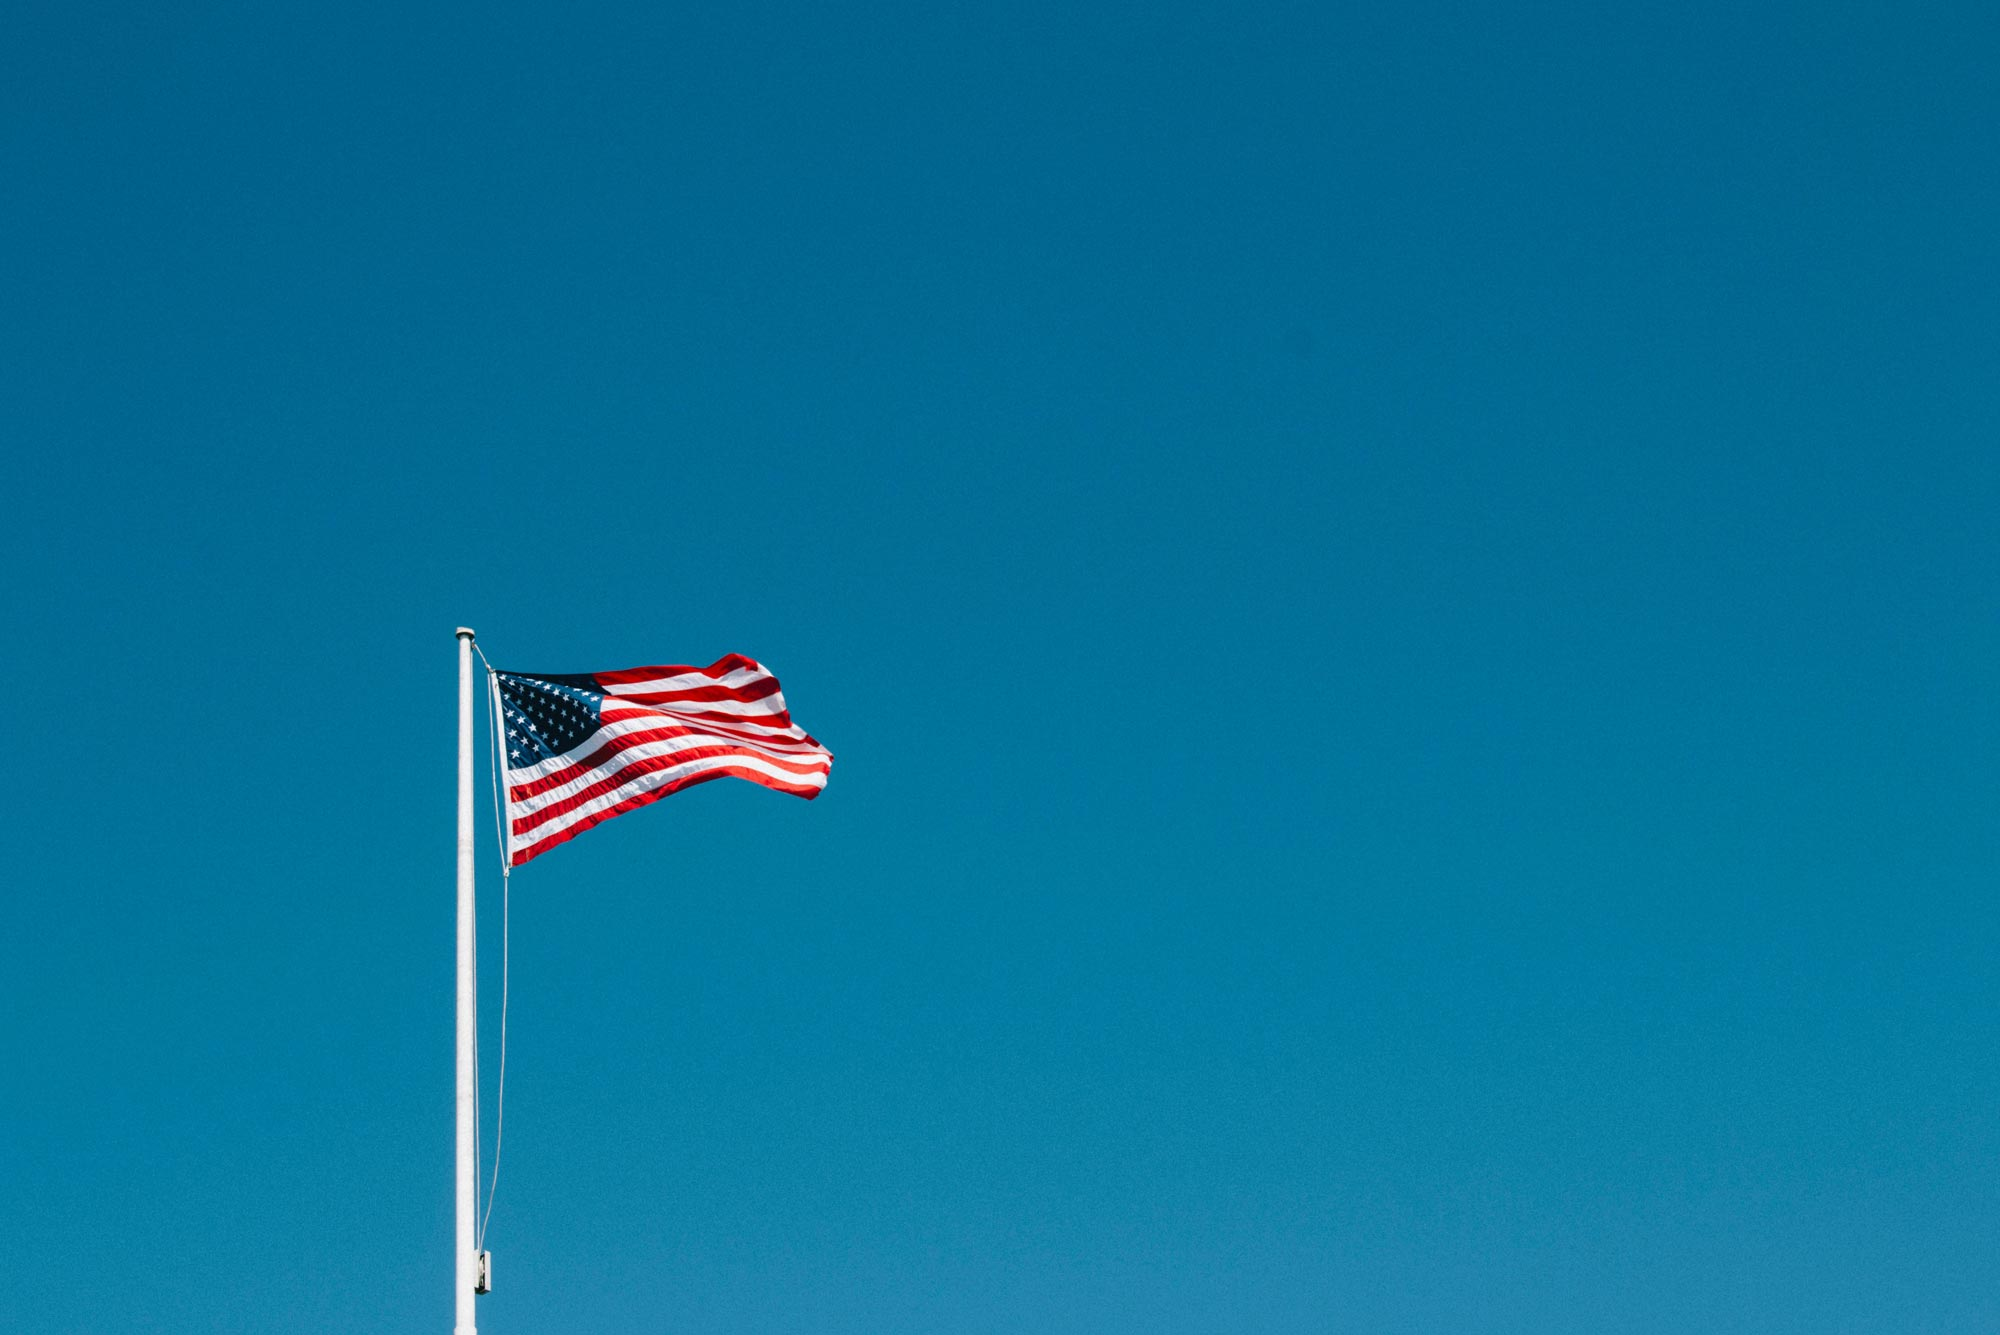 Photo of American flag with wide open blue sky in the background